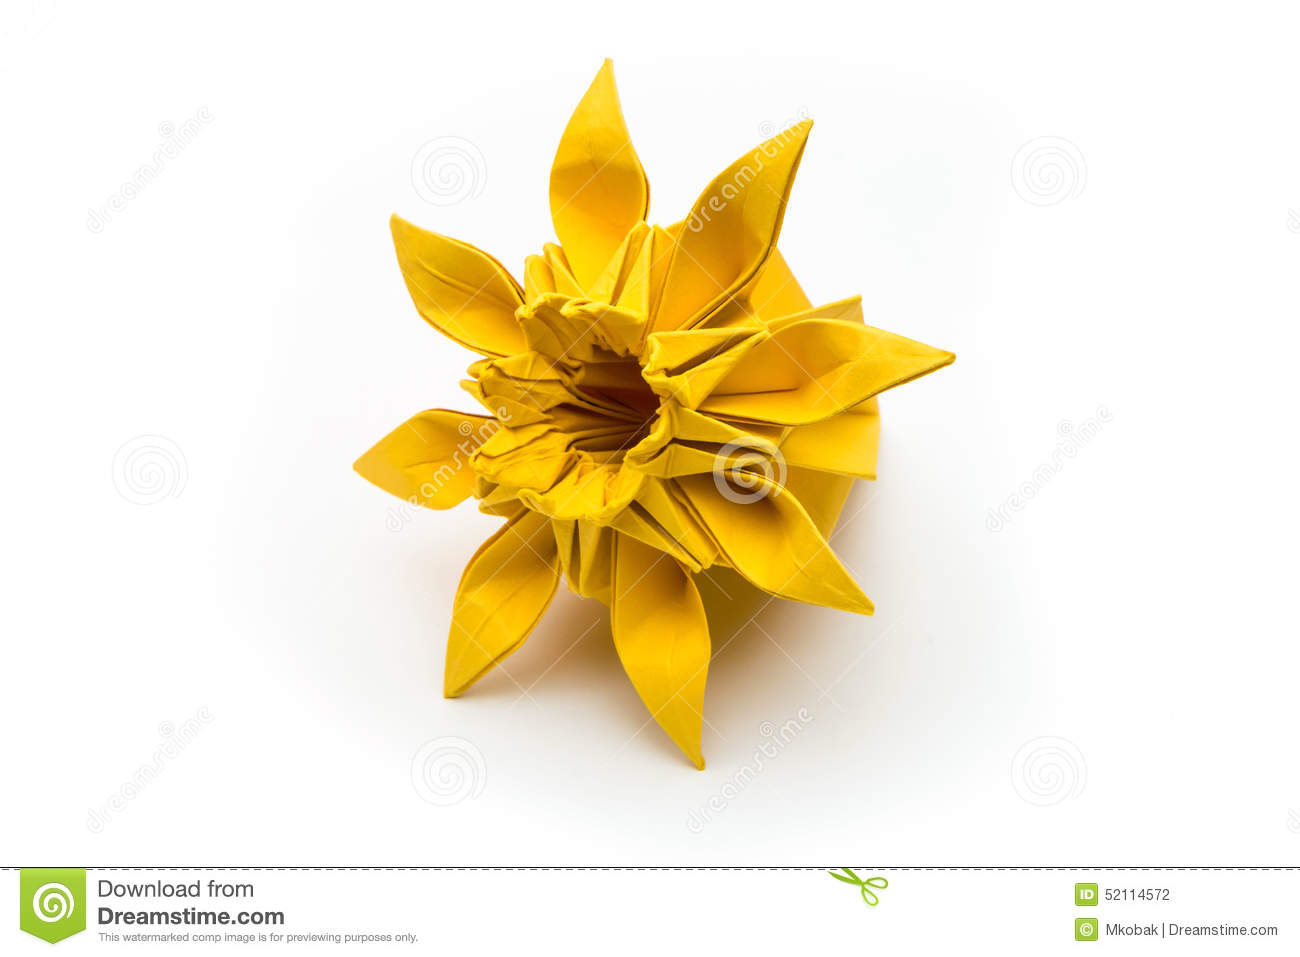 Origami Flower Stock Photo Image Of Origami Advanced 52114572